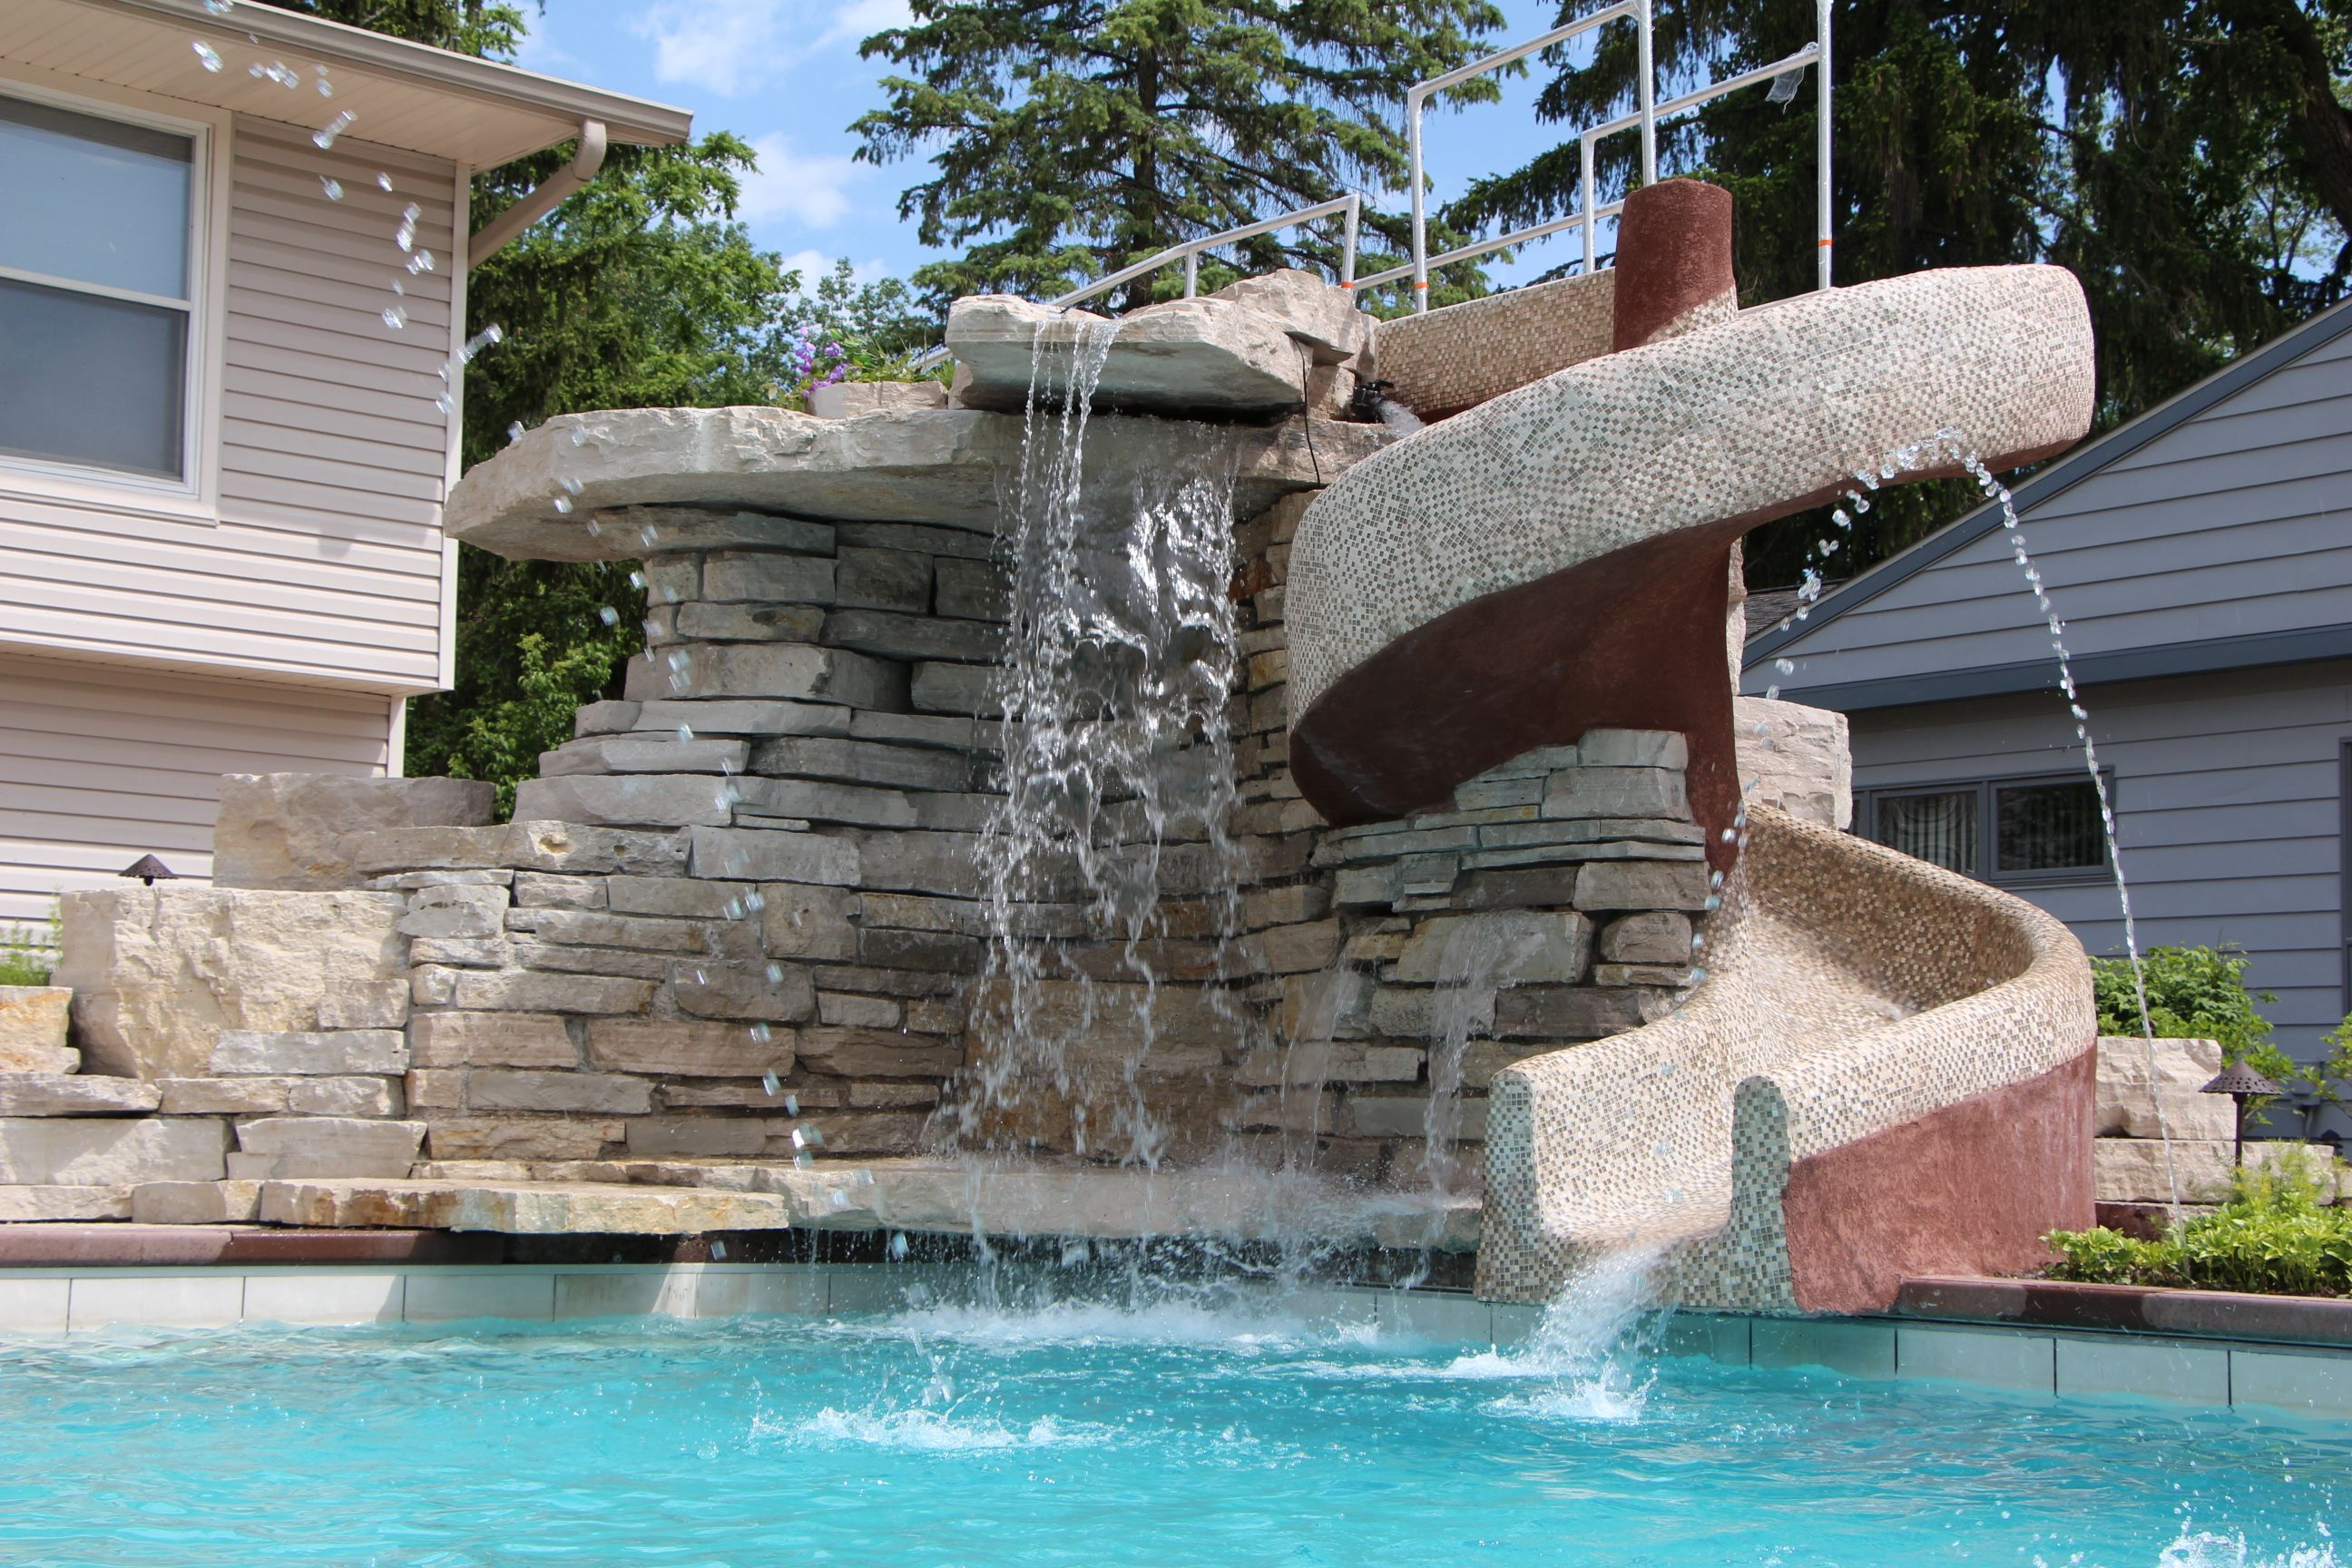 custom waterfall and slide quantus pools quantuspoolscom 847 907 4995